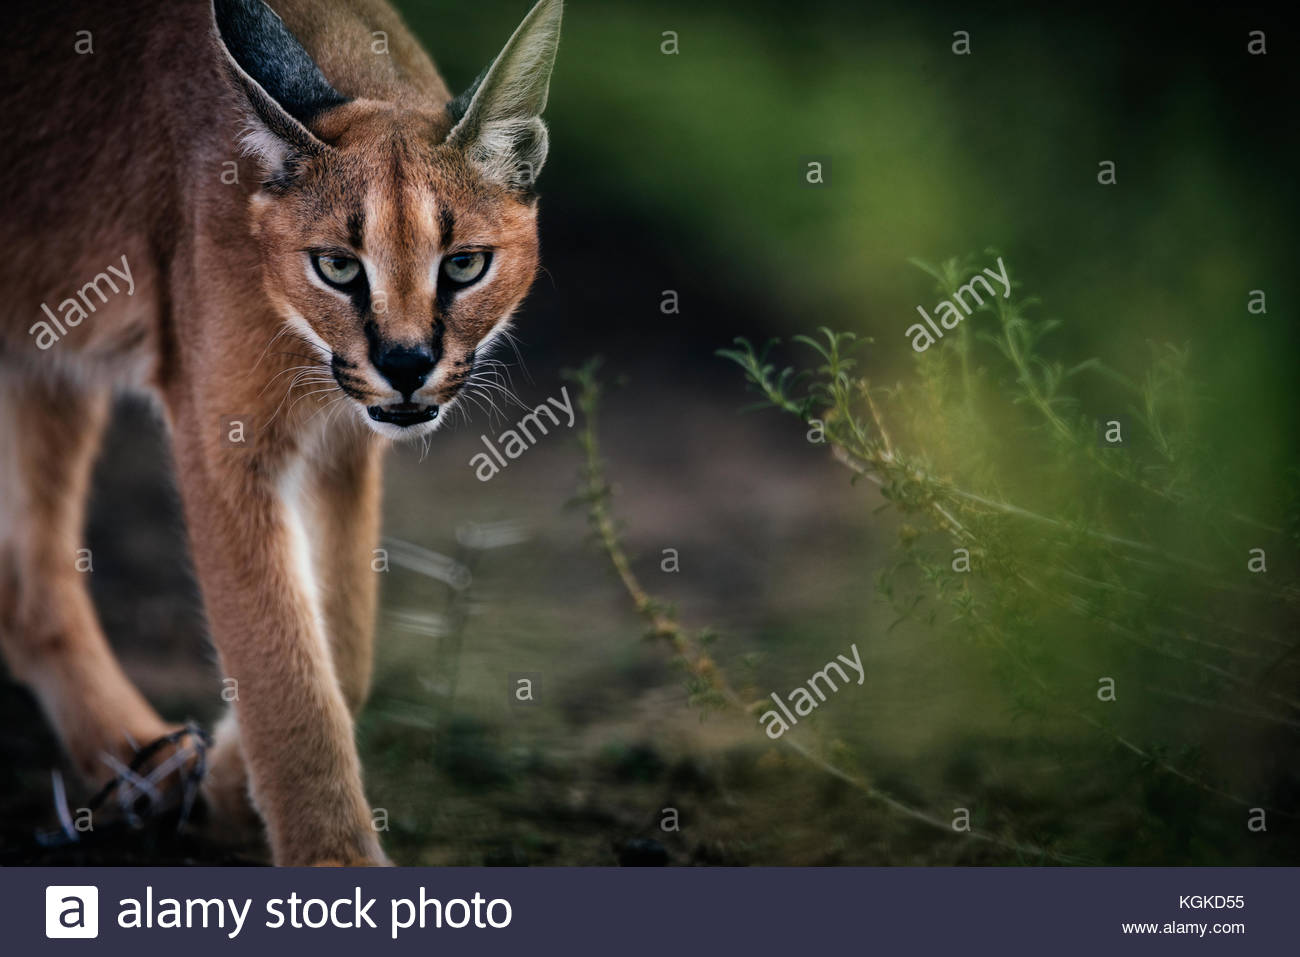 Portrait of a caracal, Caracal caracal, walking across branches. - Stock Image